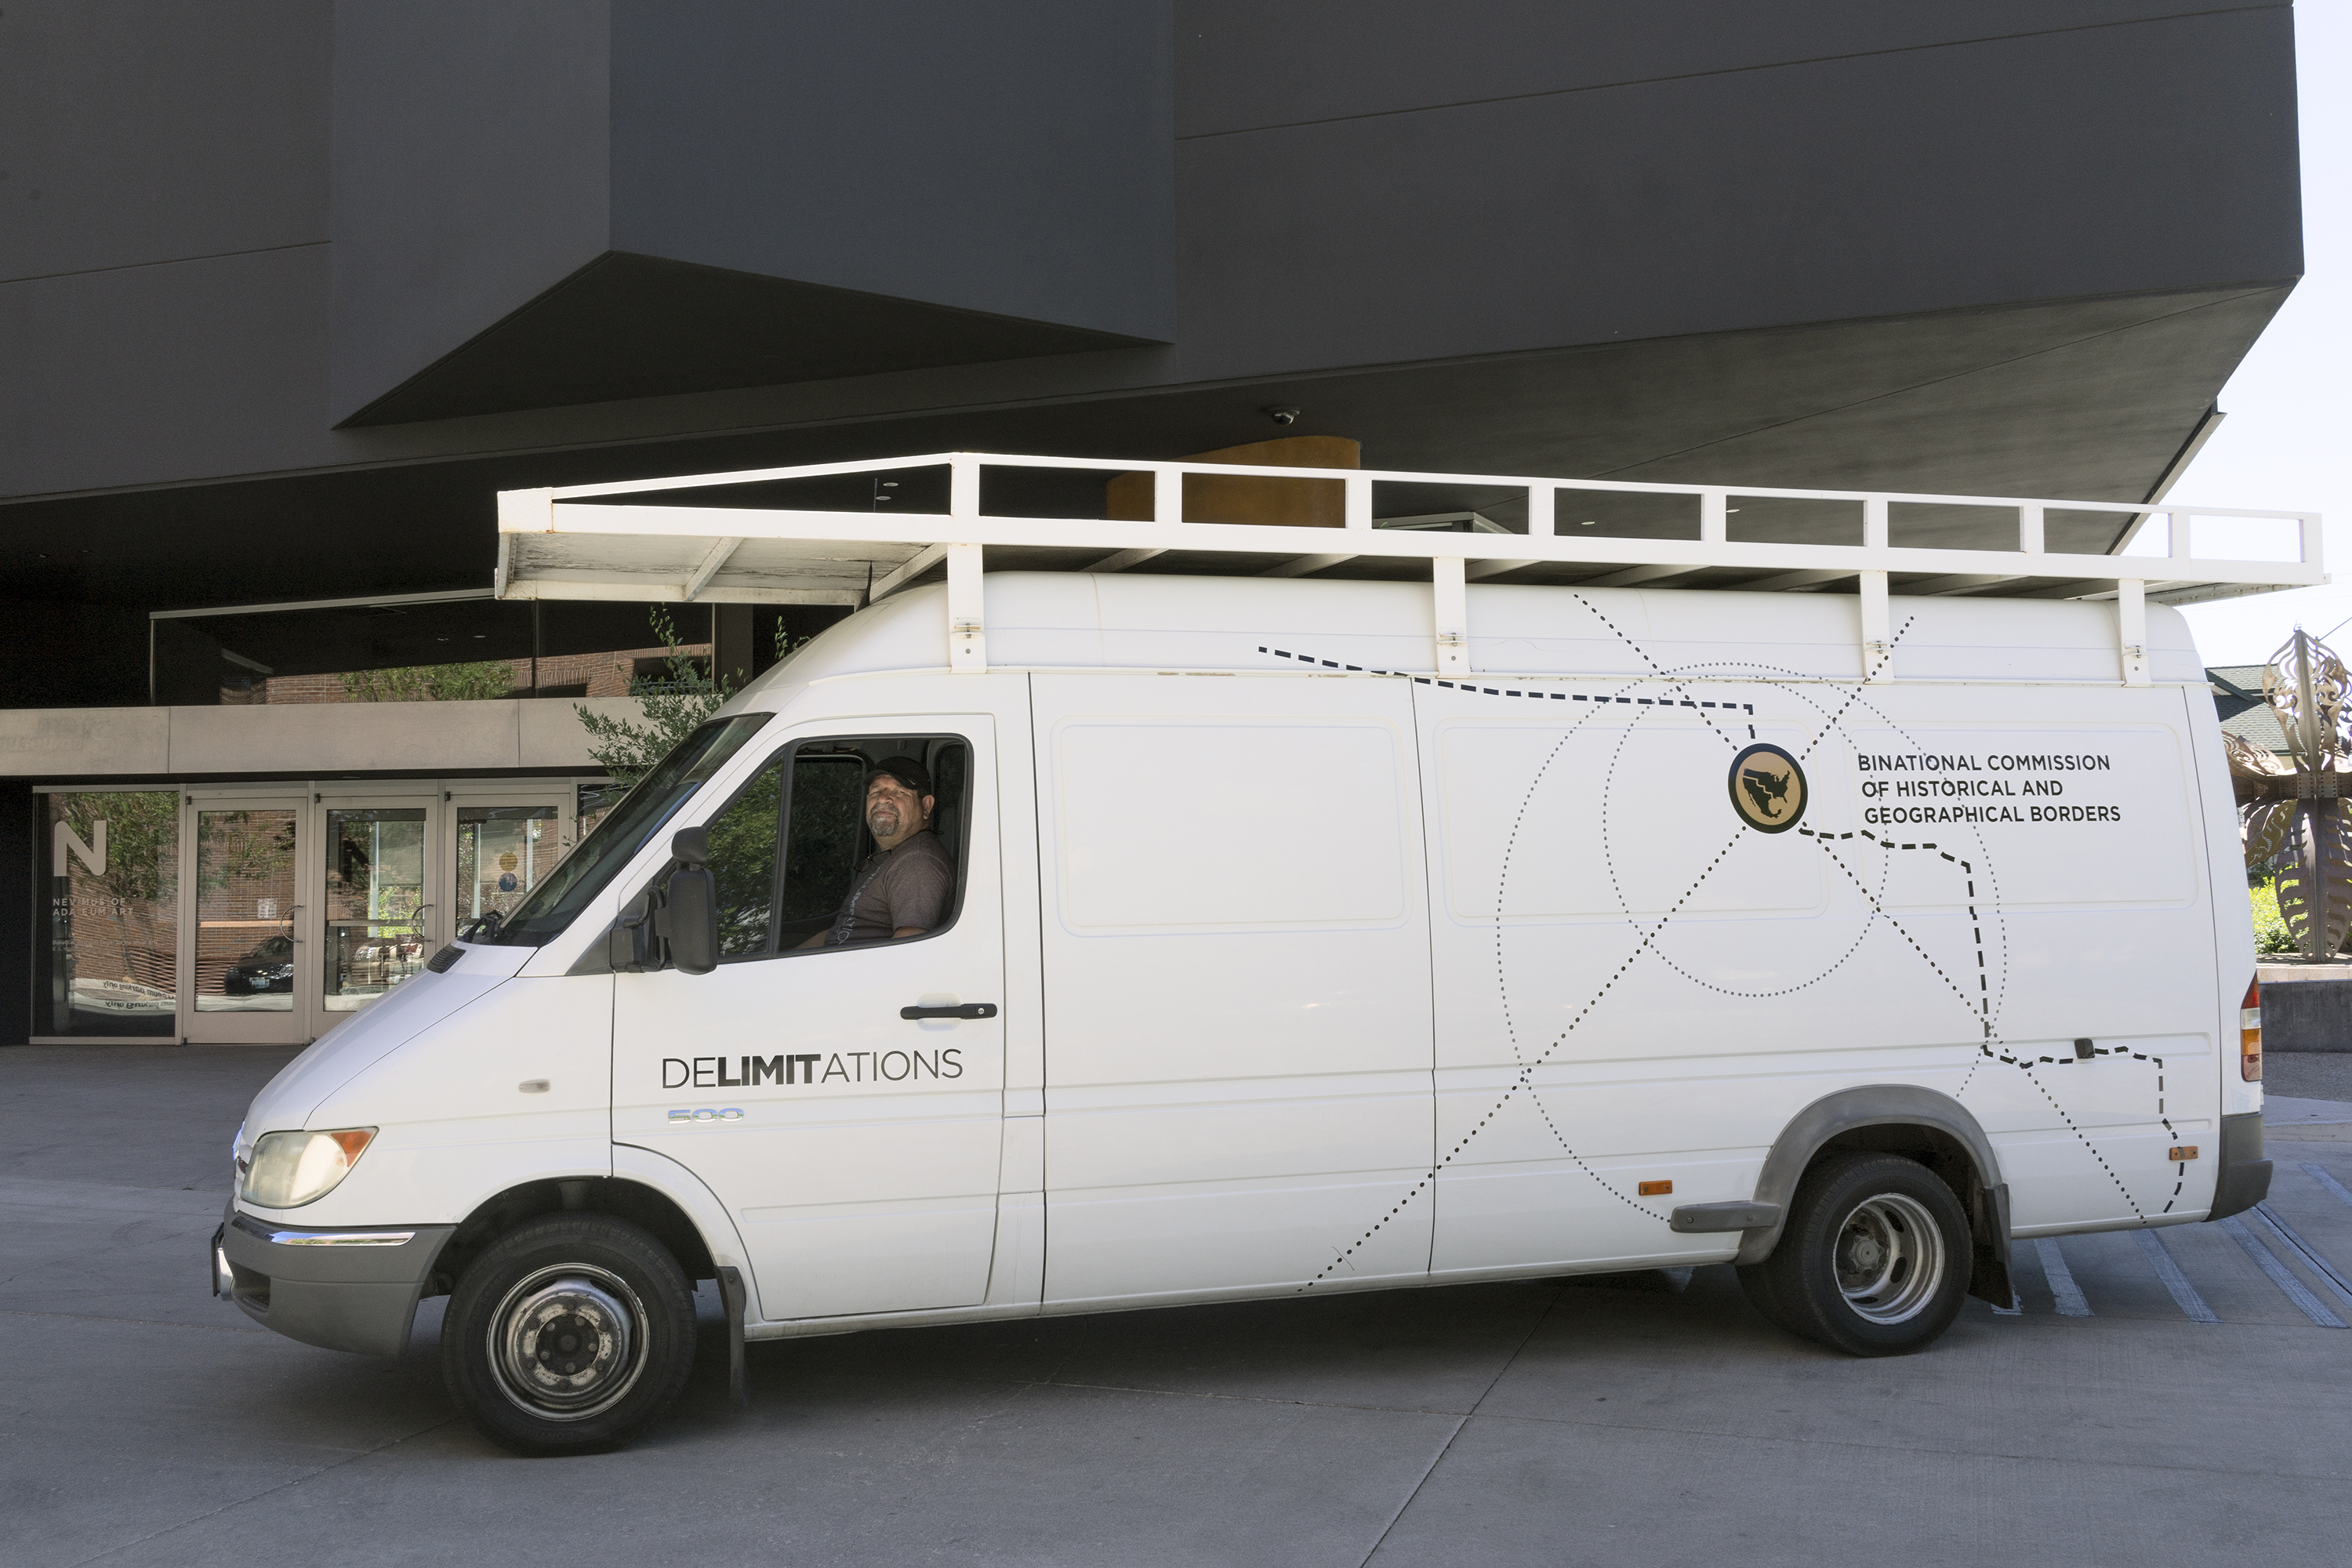 Marcos Ramirez ERRE drives the Delimitations van in front of the Nevada Museum of Art.